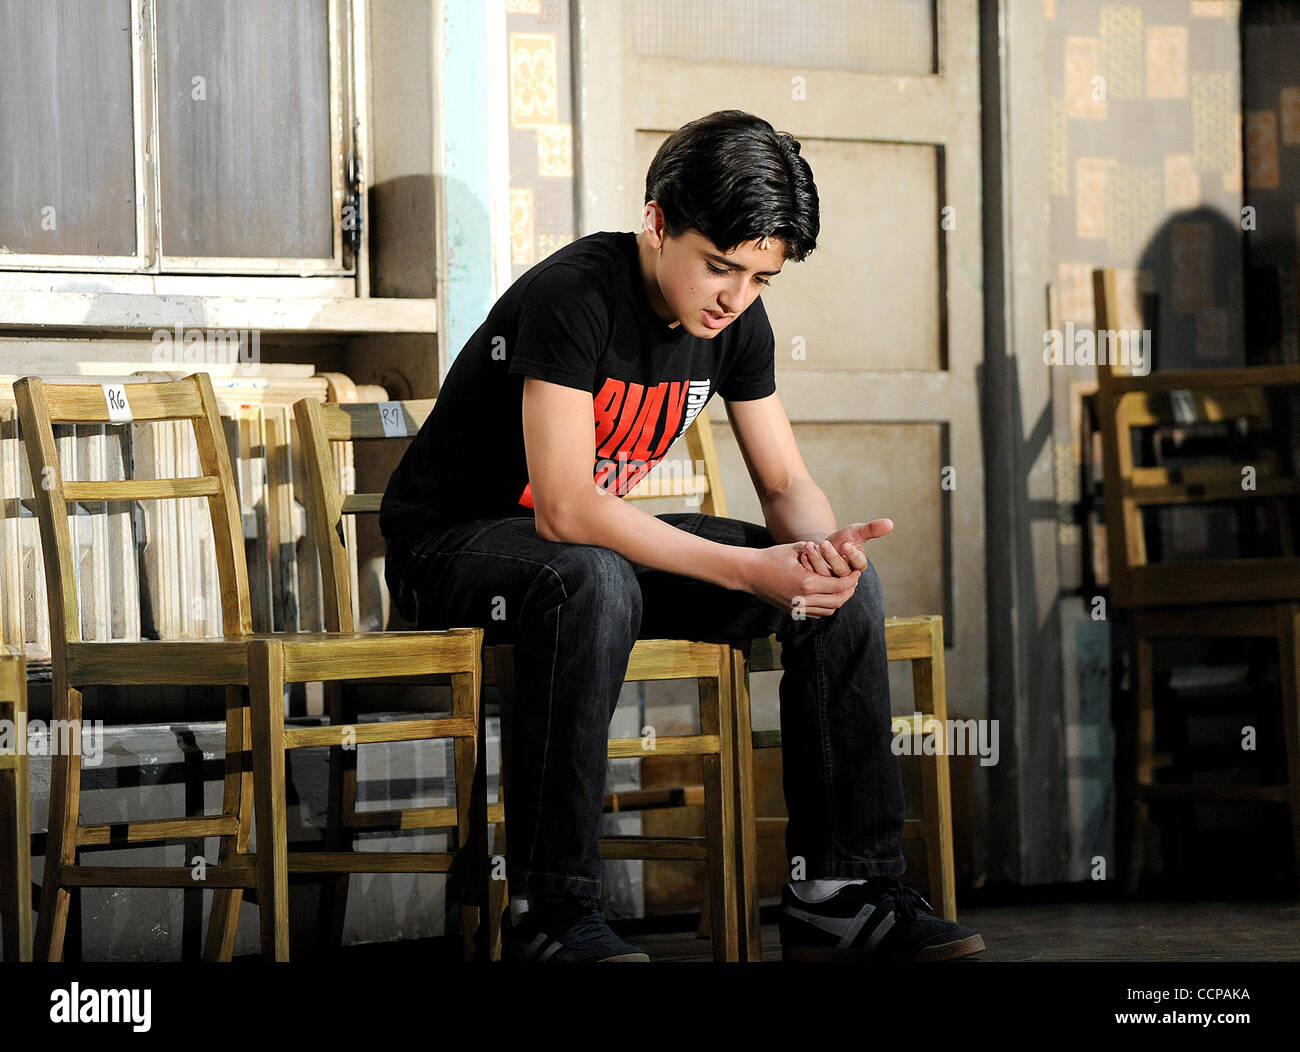 Oct 14, 2010 - Durham, North Carolina; USA -   Actor GIUSEPPE BAUSILIO who is starring as Billy Elliot for the Broadway - Stock Image